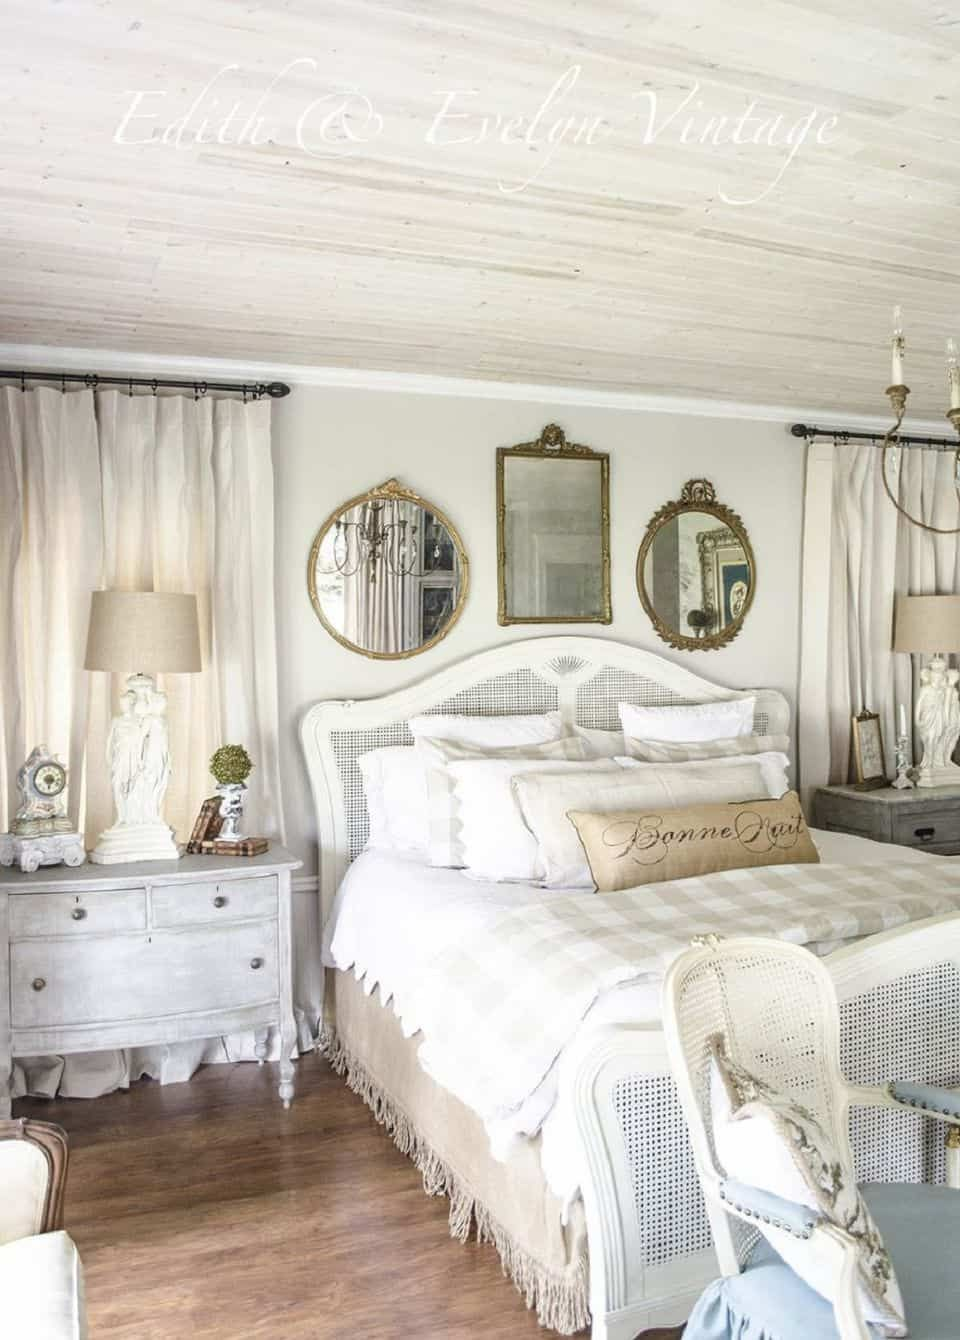 5 Easy French Country Bedroom Ideas Flourishmentary French Style Bedroom Country Bedroom Design Country Style Bedroom Decor Download french country bedroom